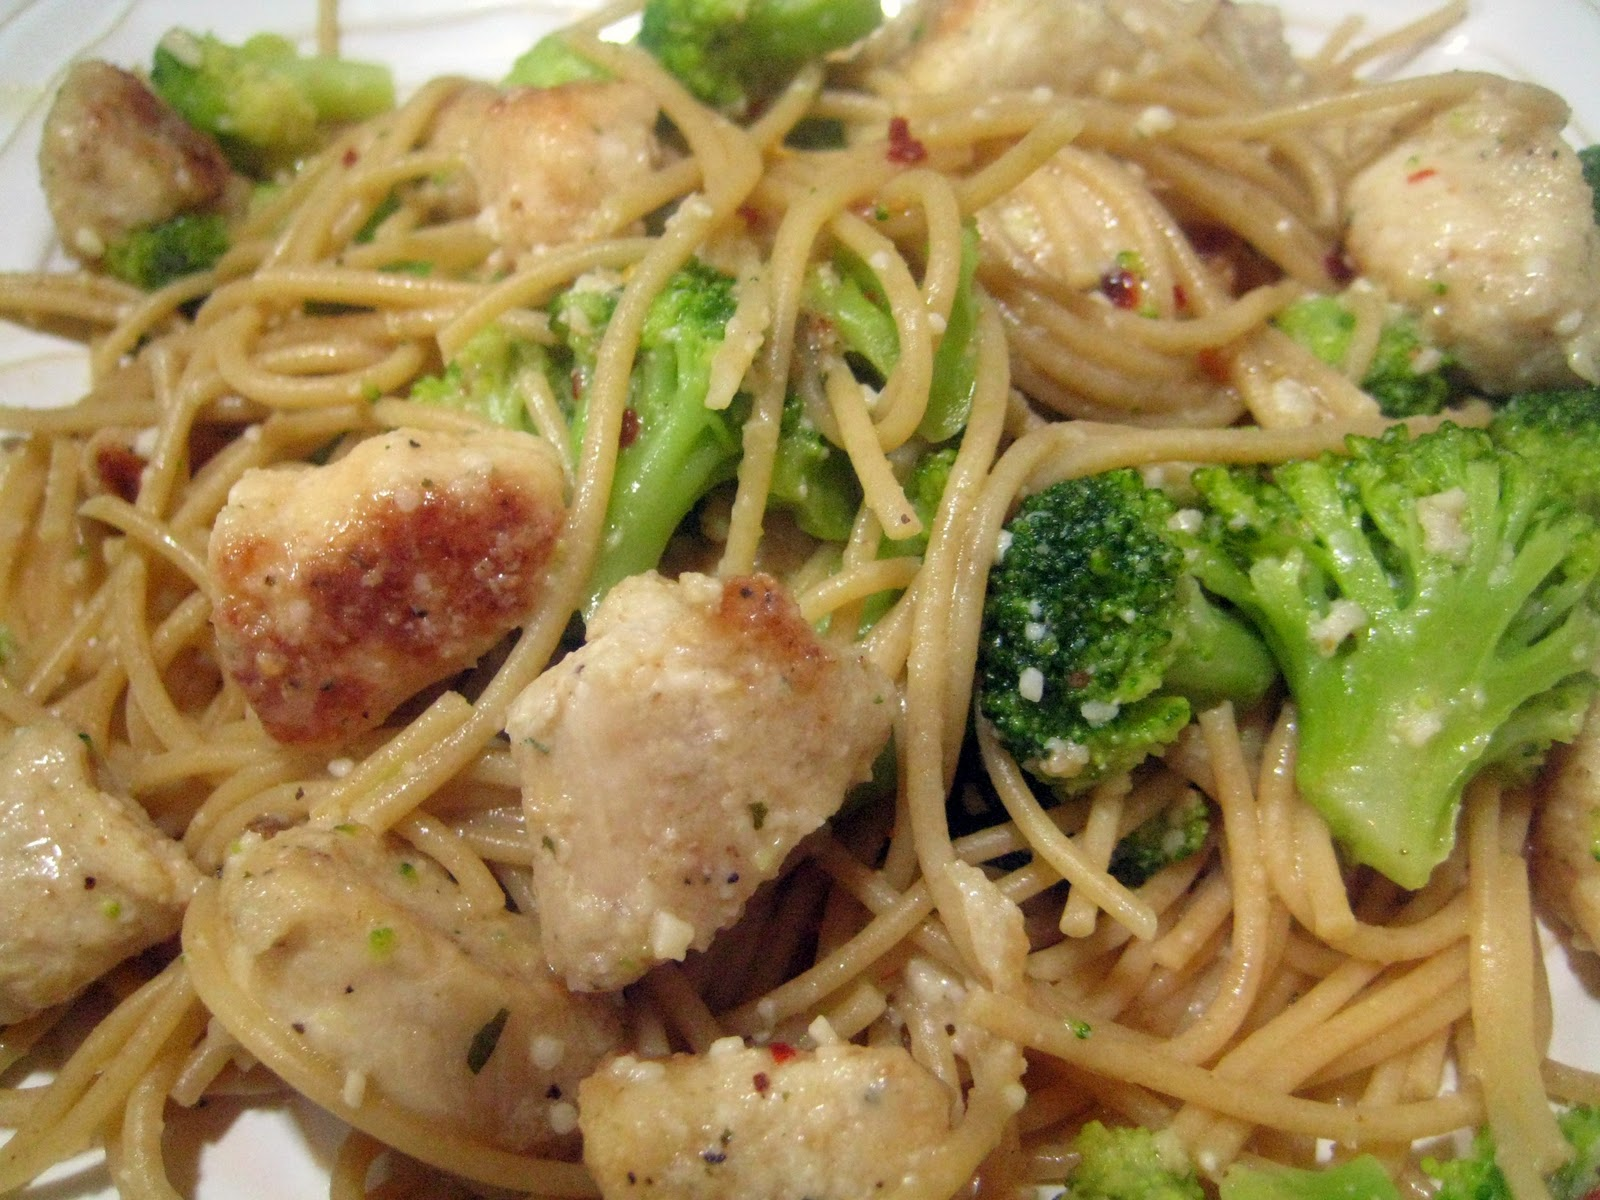 Chicken And Broccoli Pasta With White Wine Sauce